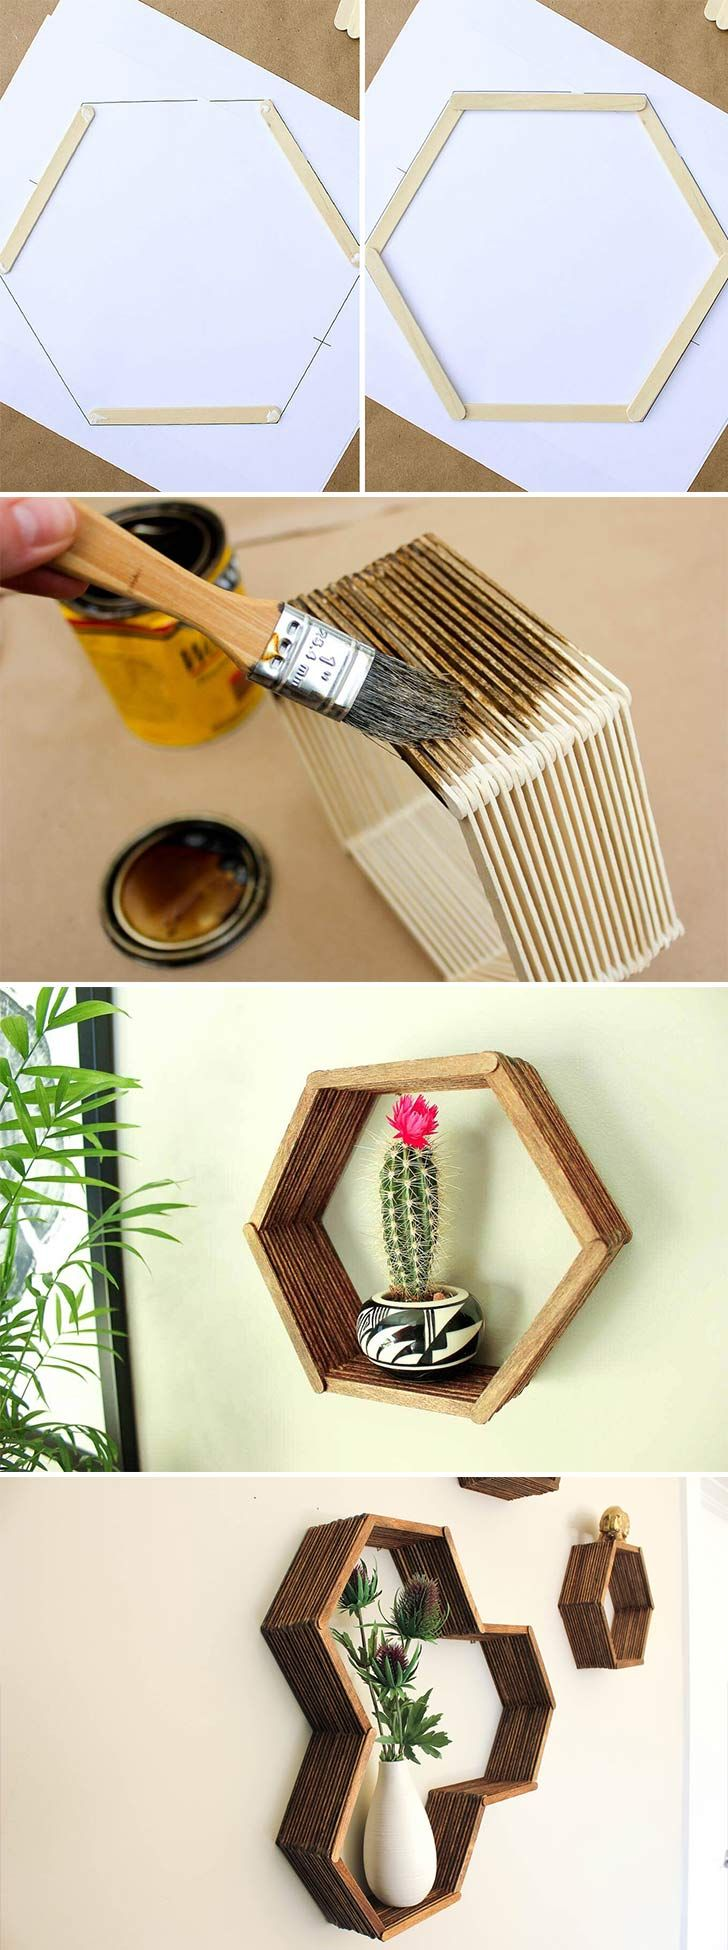 25 Best Ideas About Popsicle Stick Crafts On Pinterest